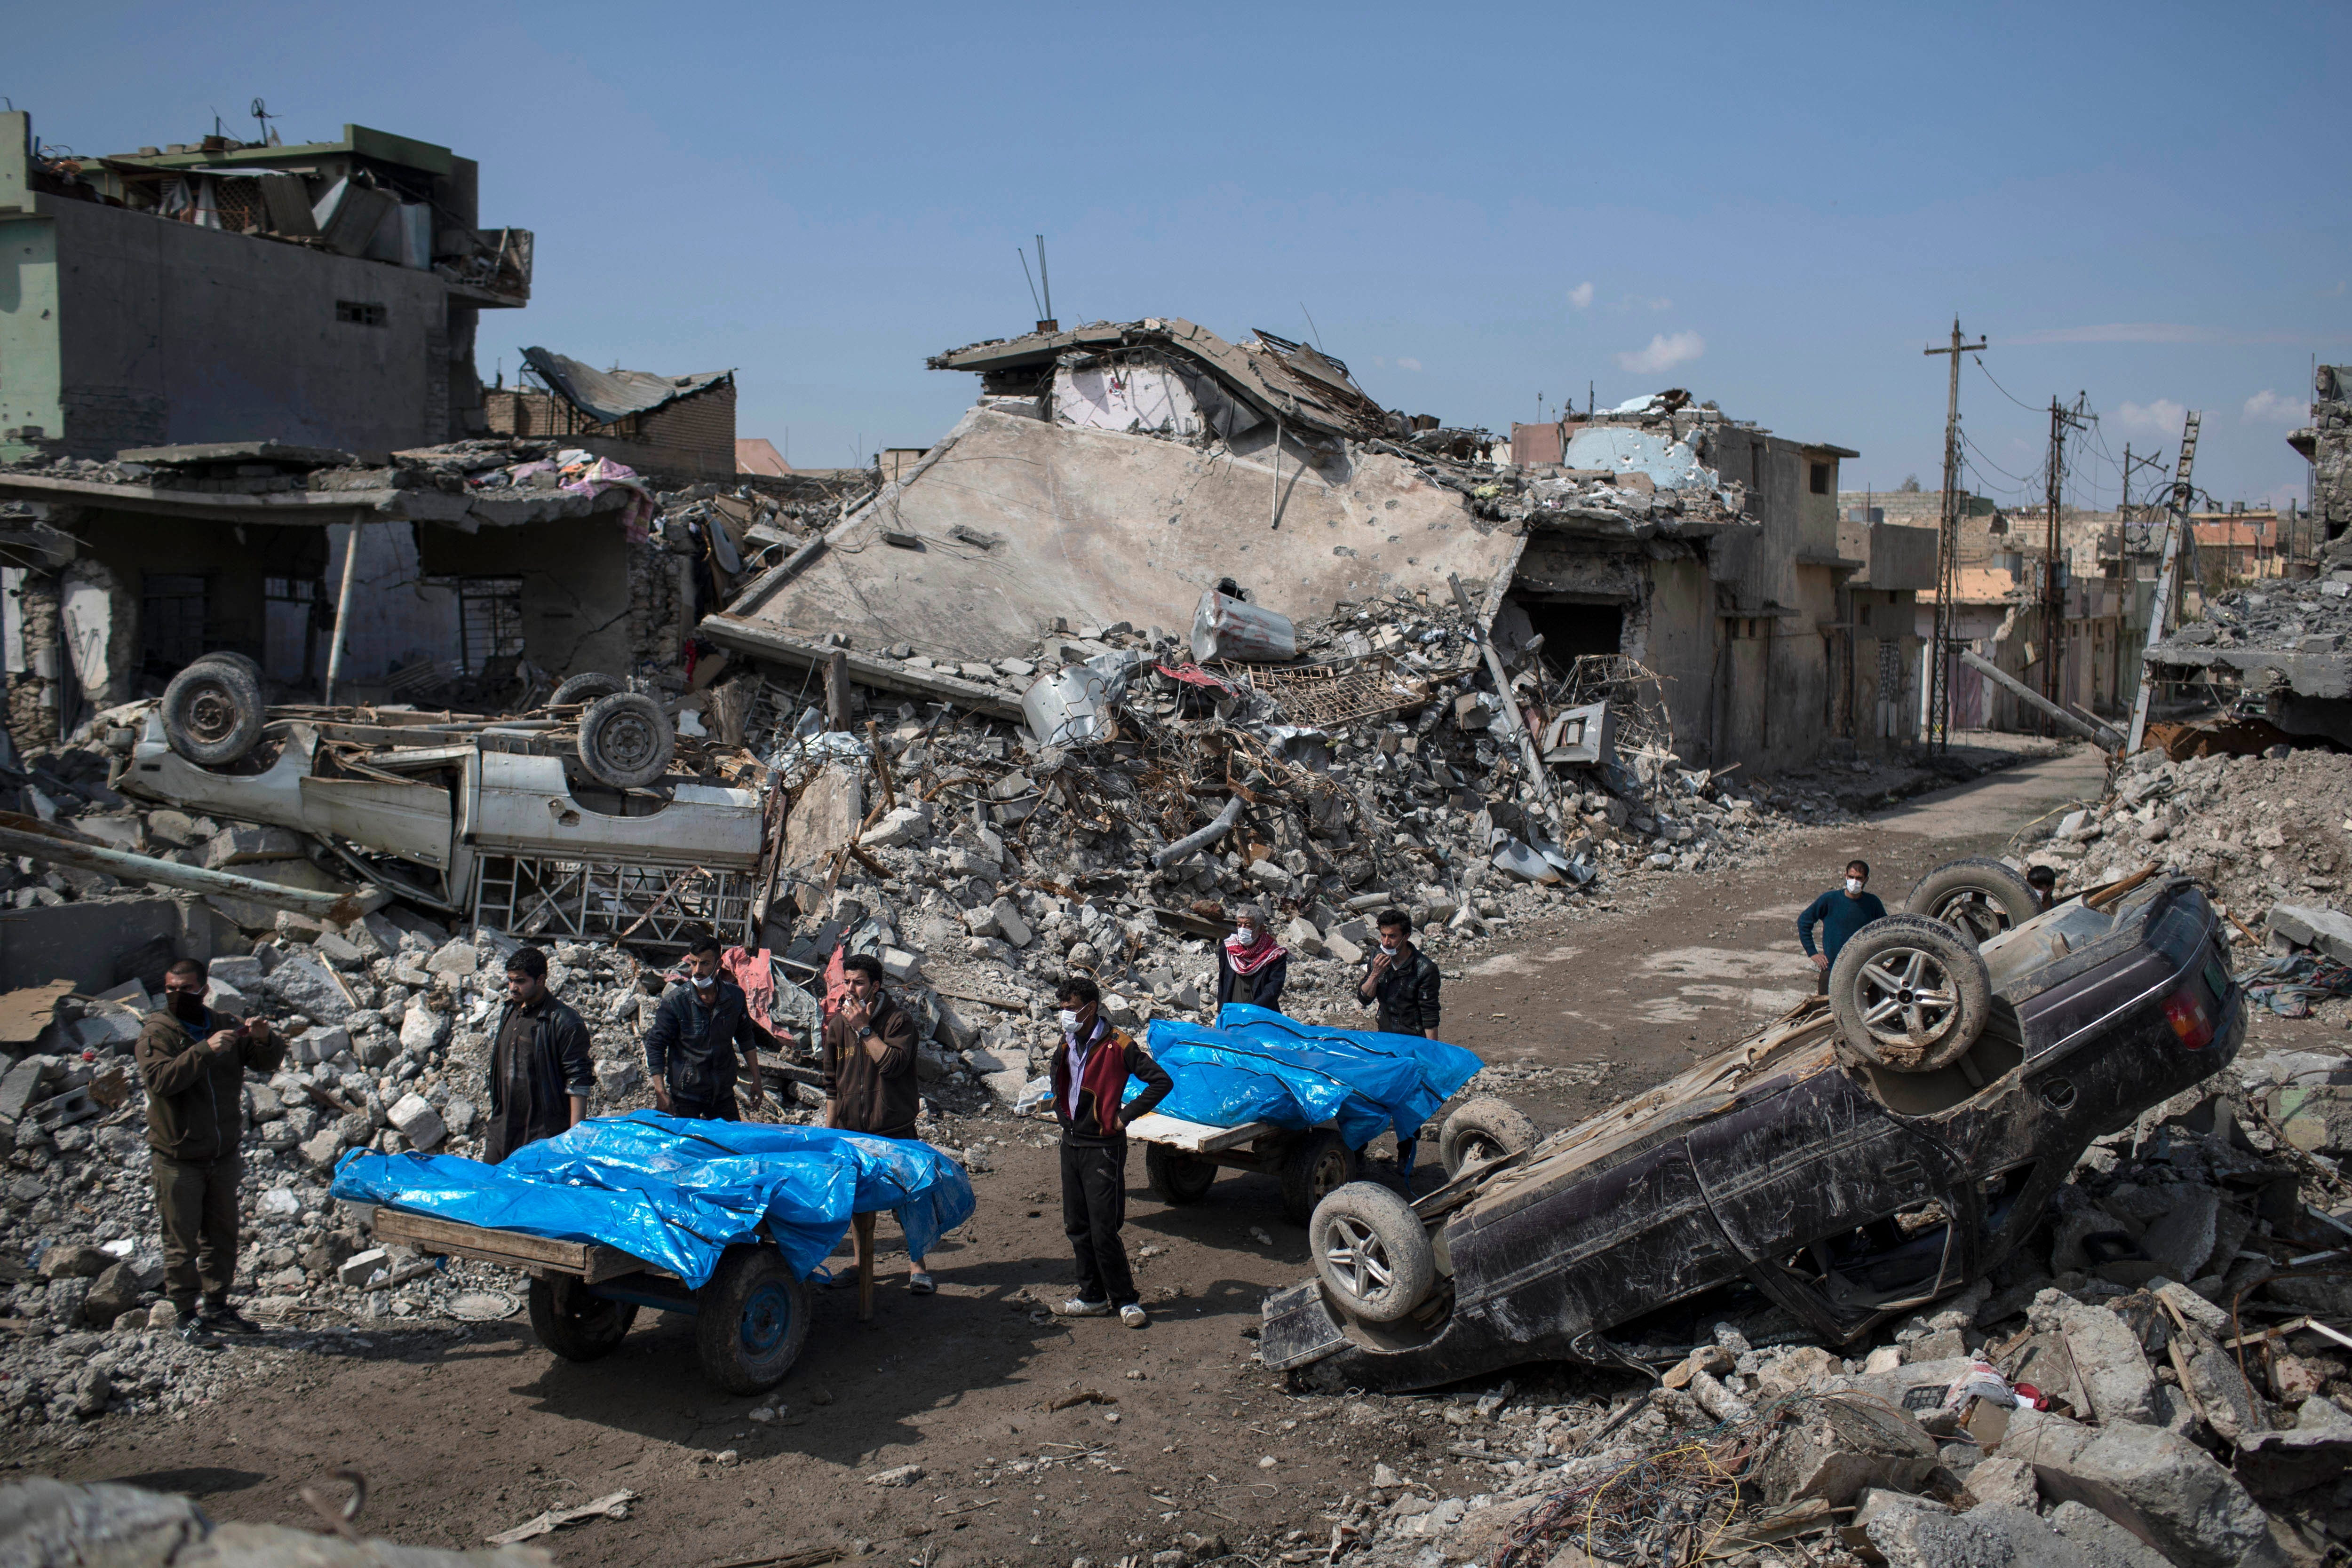 Pentagon: 45 civilians killed by coalition strikes in Iraq and Syria